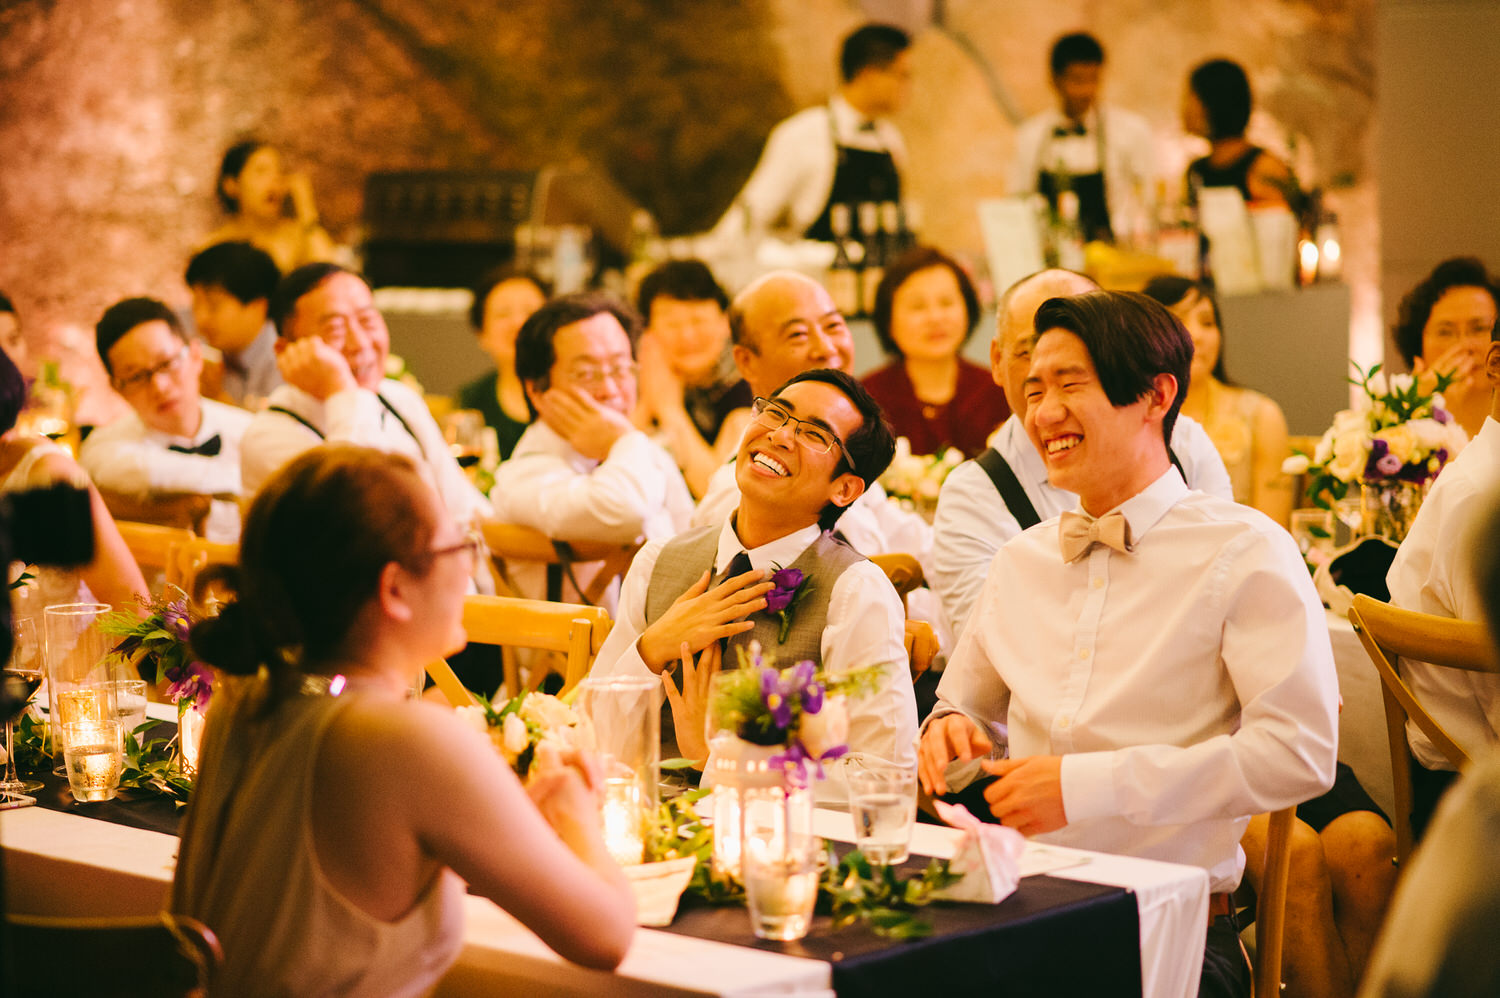 phuket wedding-diktatphotography-alex&andy wedding-141